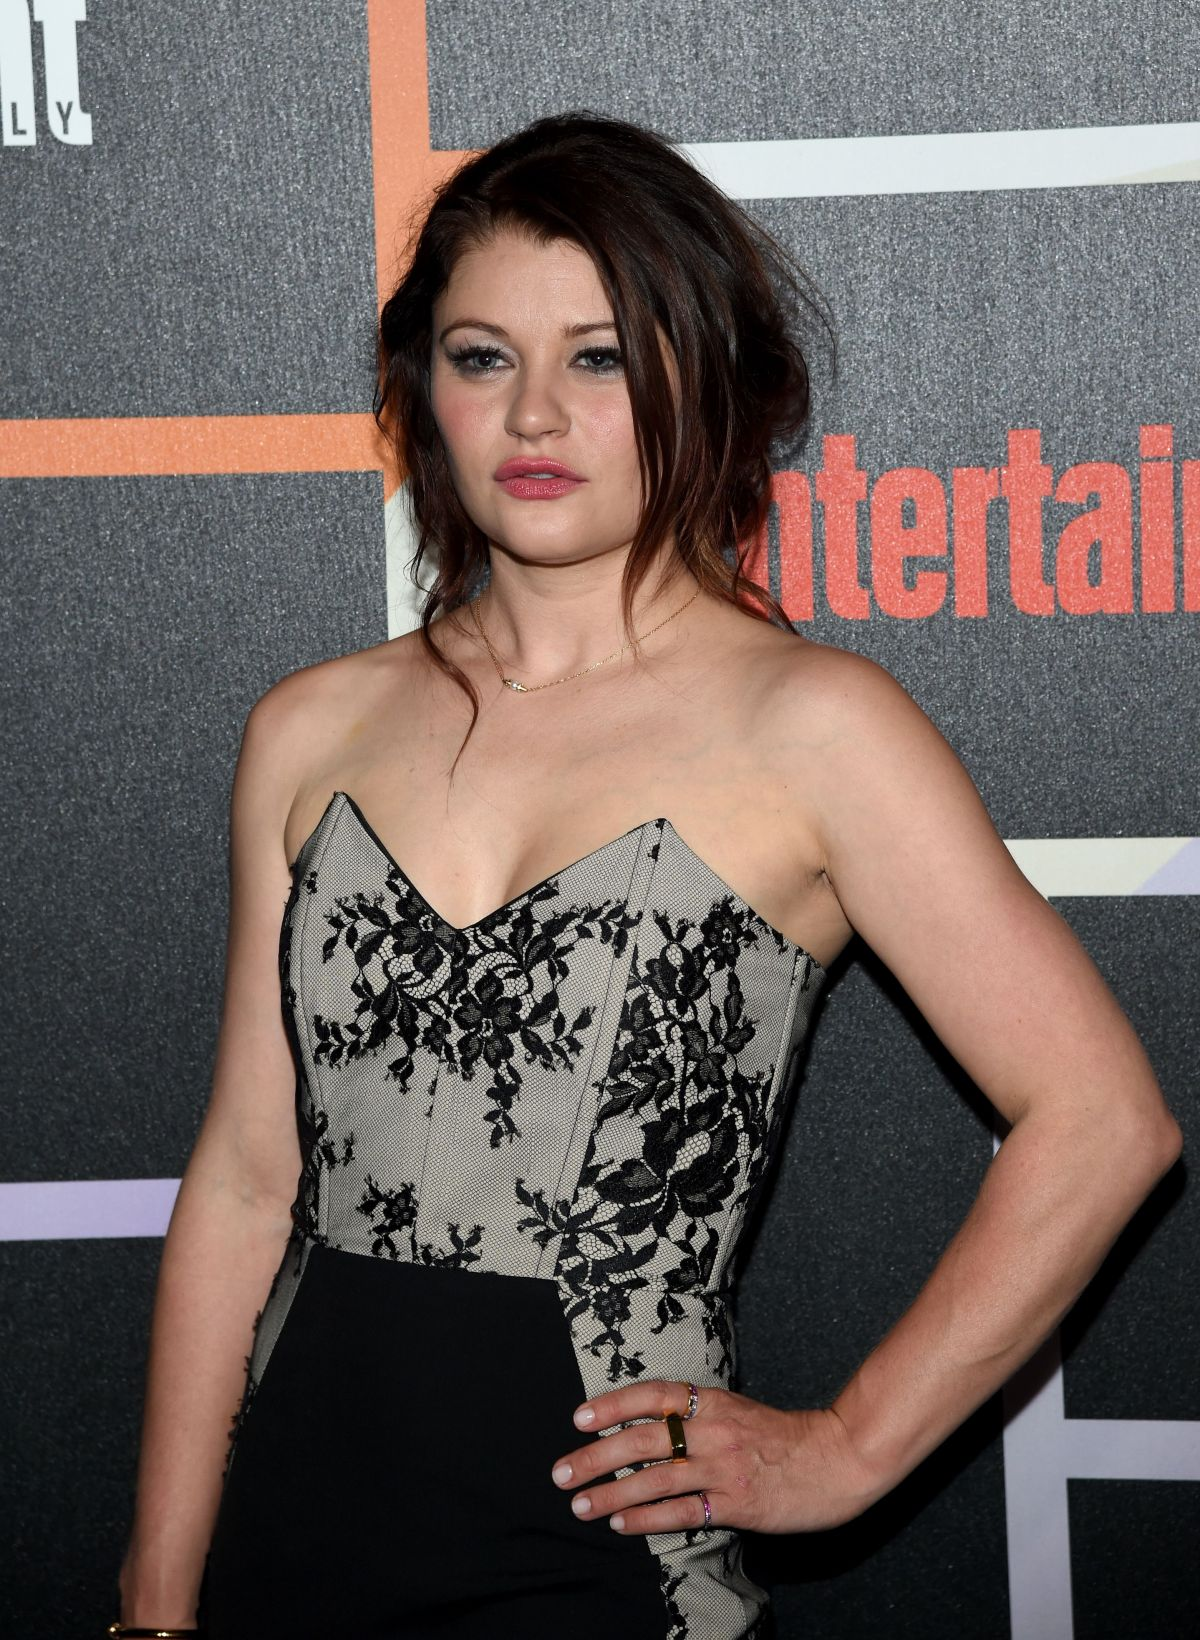 EMILIE DE RAVIN at Entertainment Weekly's Comic-con Celebration